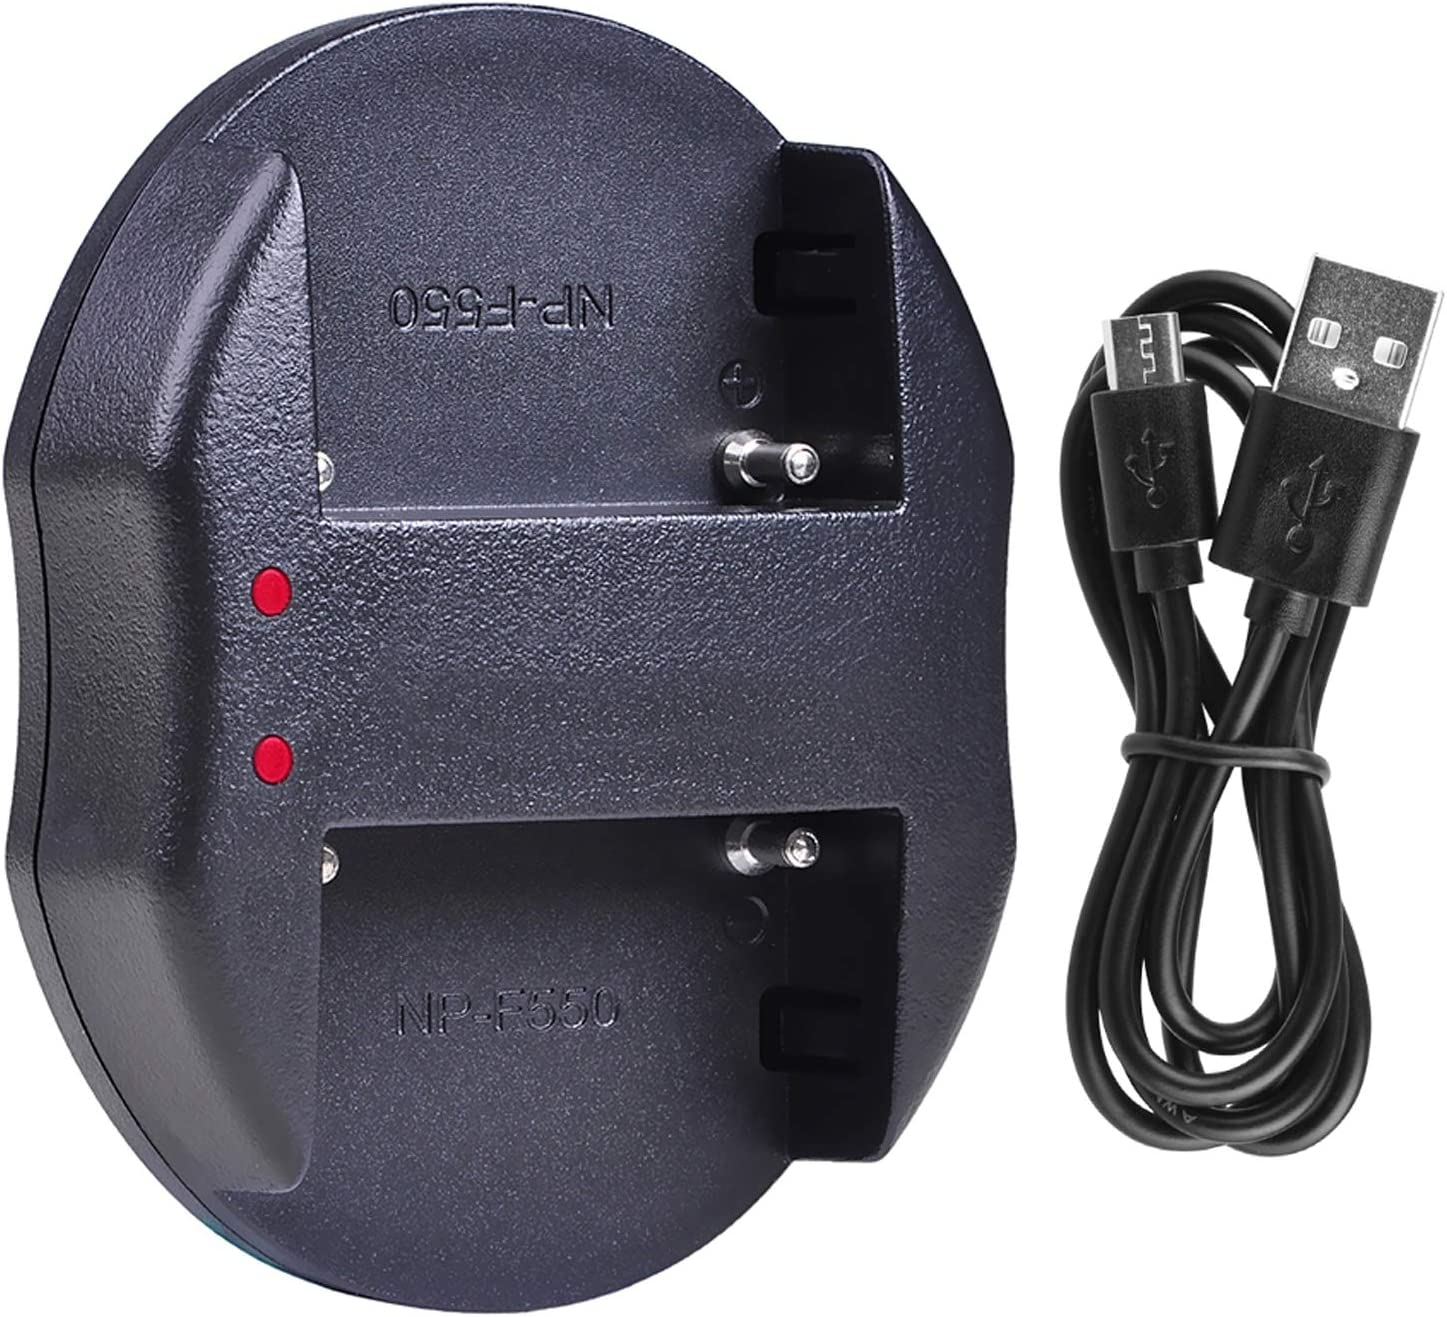 DCR-TRV25E Dual Battery USB Charger for Sony DCR-TRV25 DCR-TRV27 DCR-TRV27E MiniDV Handycam Camcorder